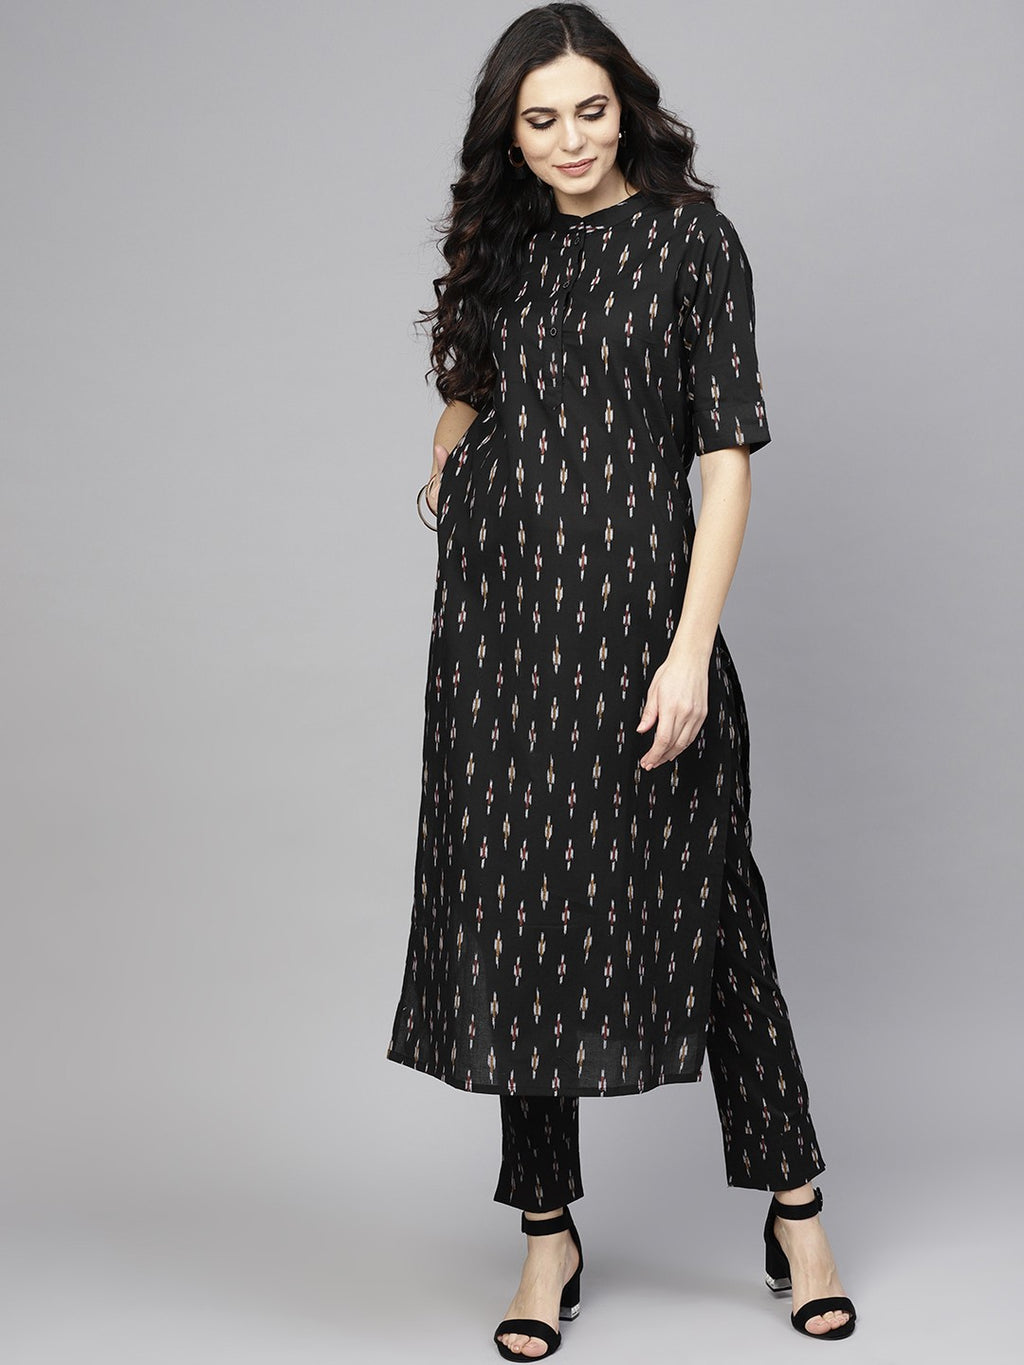 Black Ikat Printed Straight Kurta With Pant Set (Fully Stitched) | Znx4ever.com